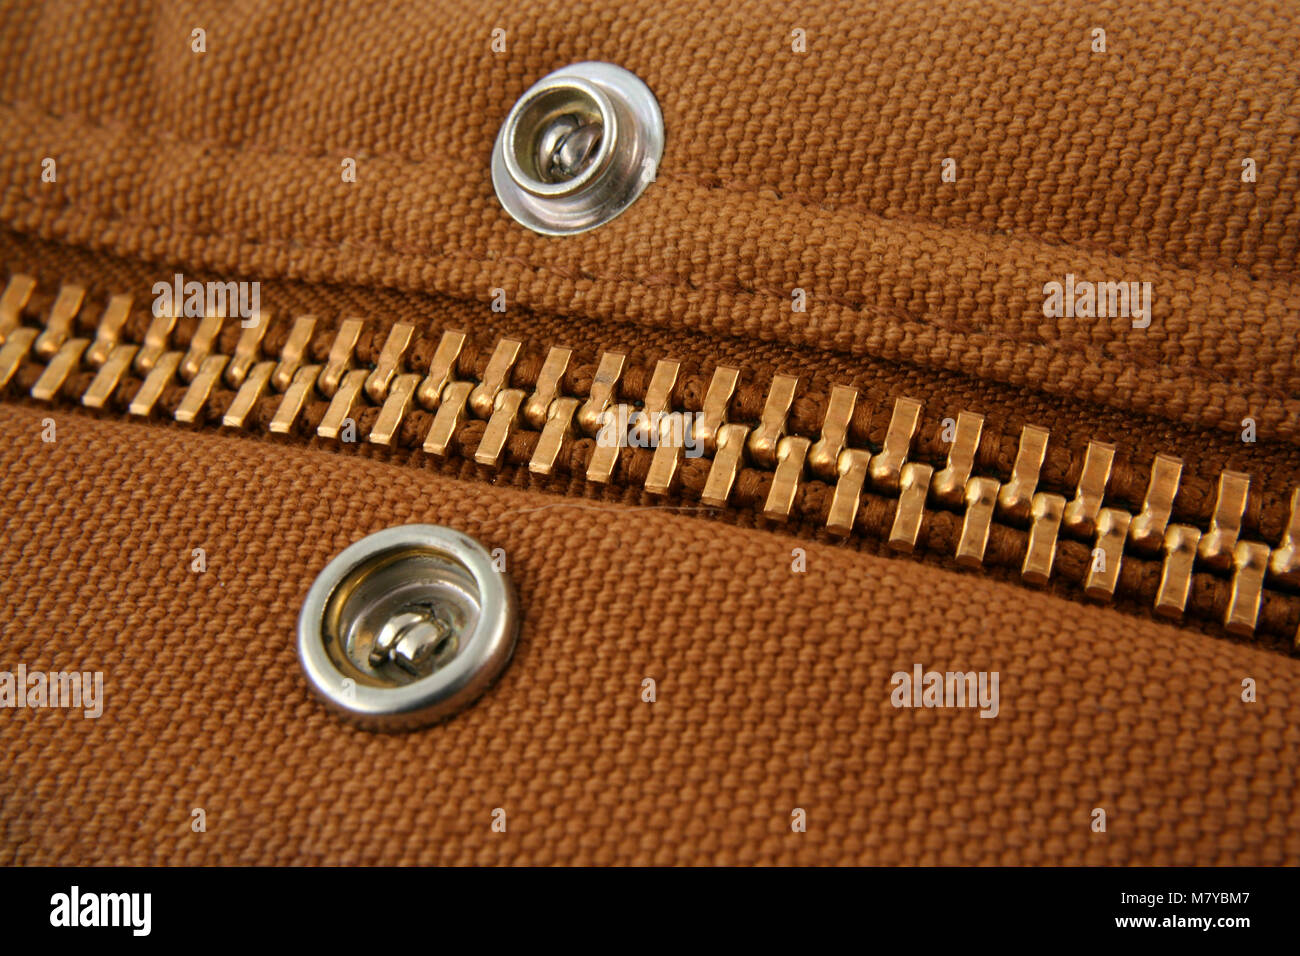 A Large gold zipper macro with snaps - Stock Image